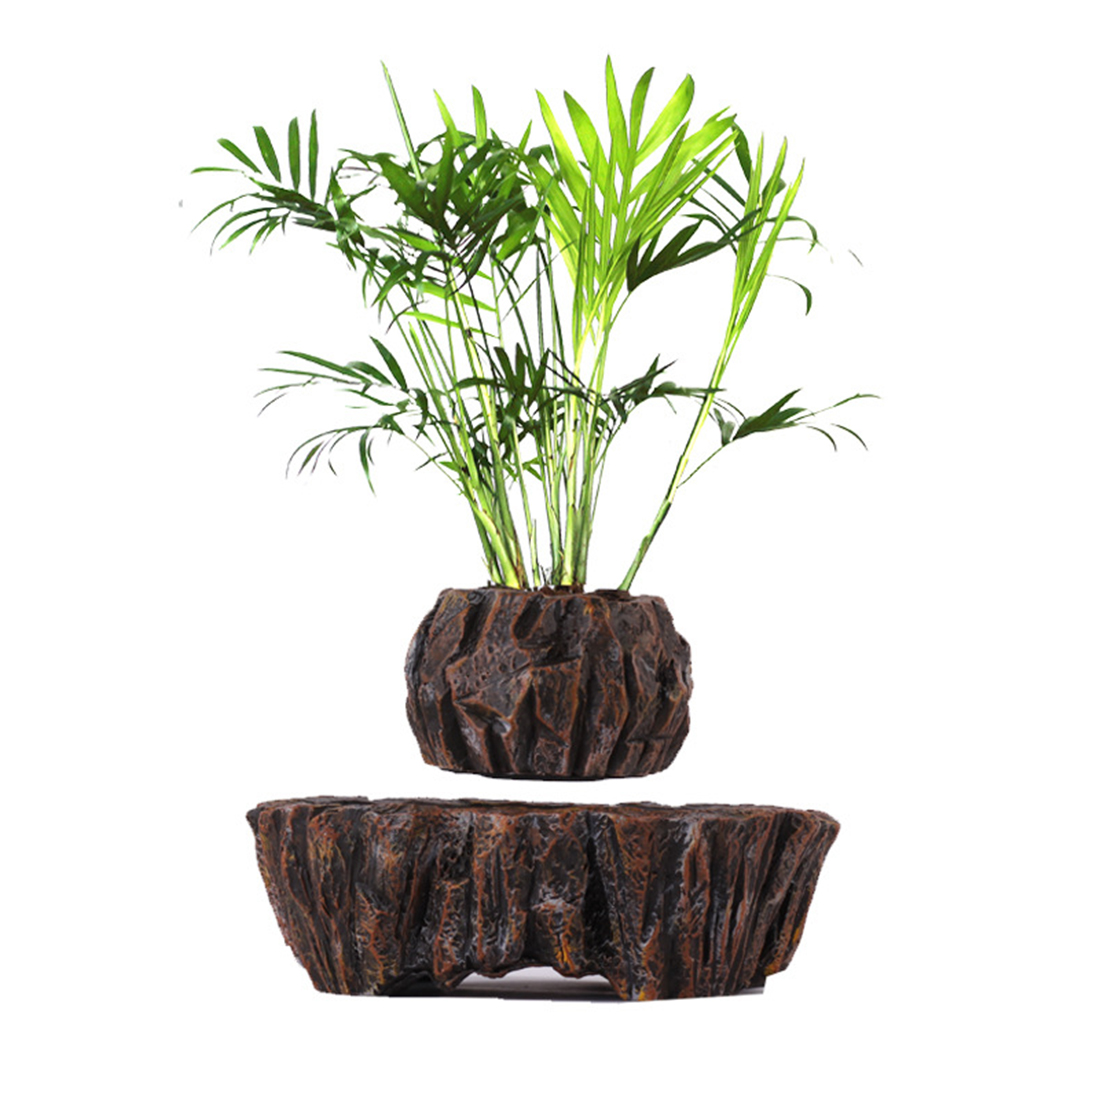 New Retro Suspended Plant <font><b>Pot</b></font> Creative Air Floating <font><b>Magnetic</b></font> Planter for Home Office Garden Decor - EU Plug image